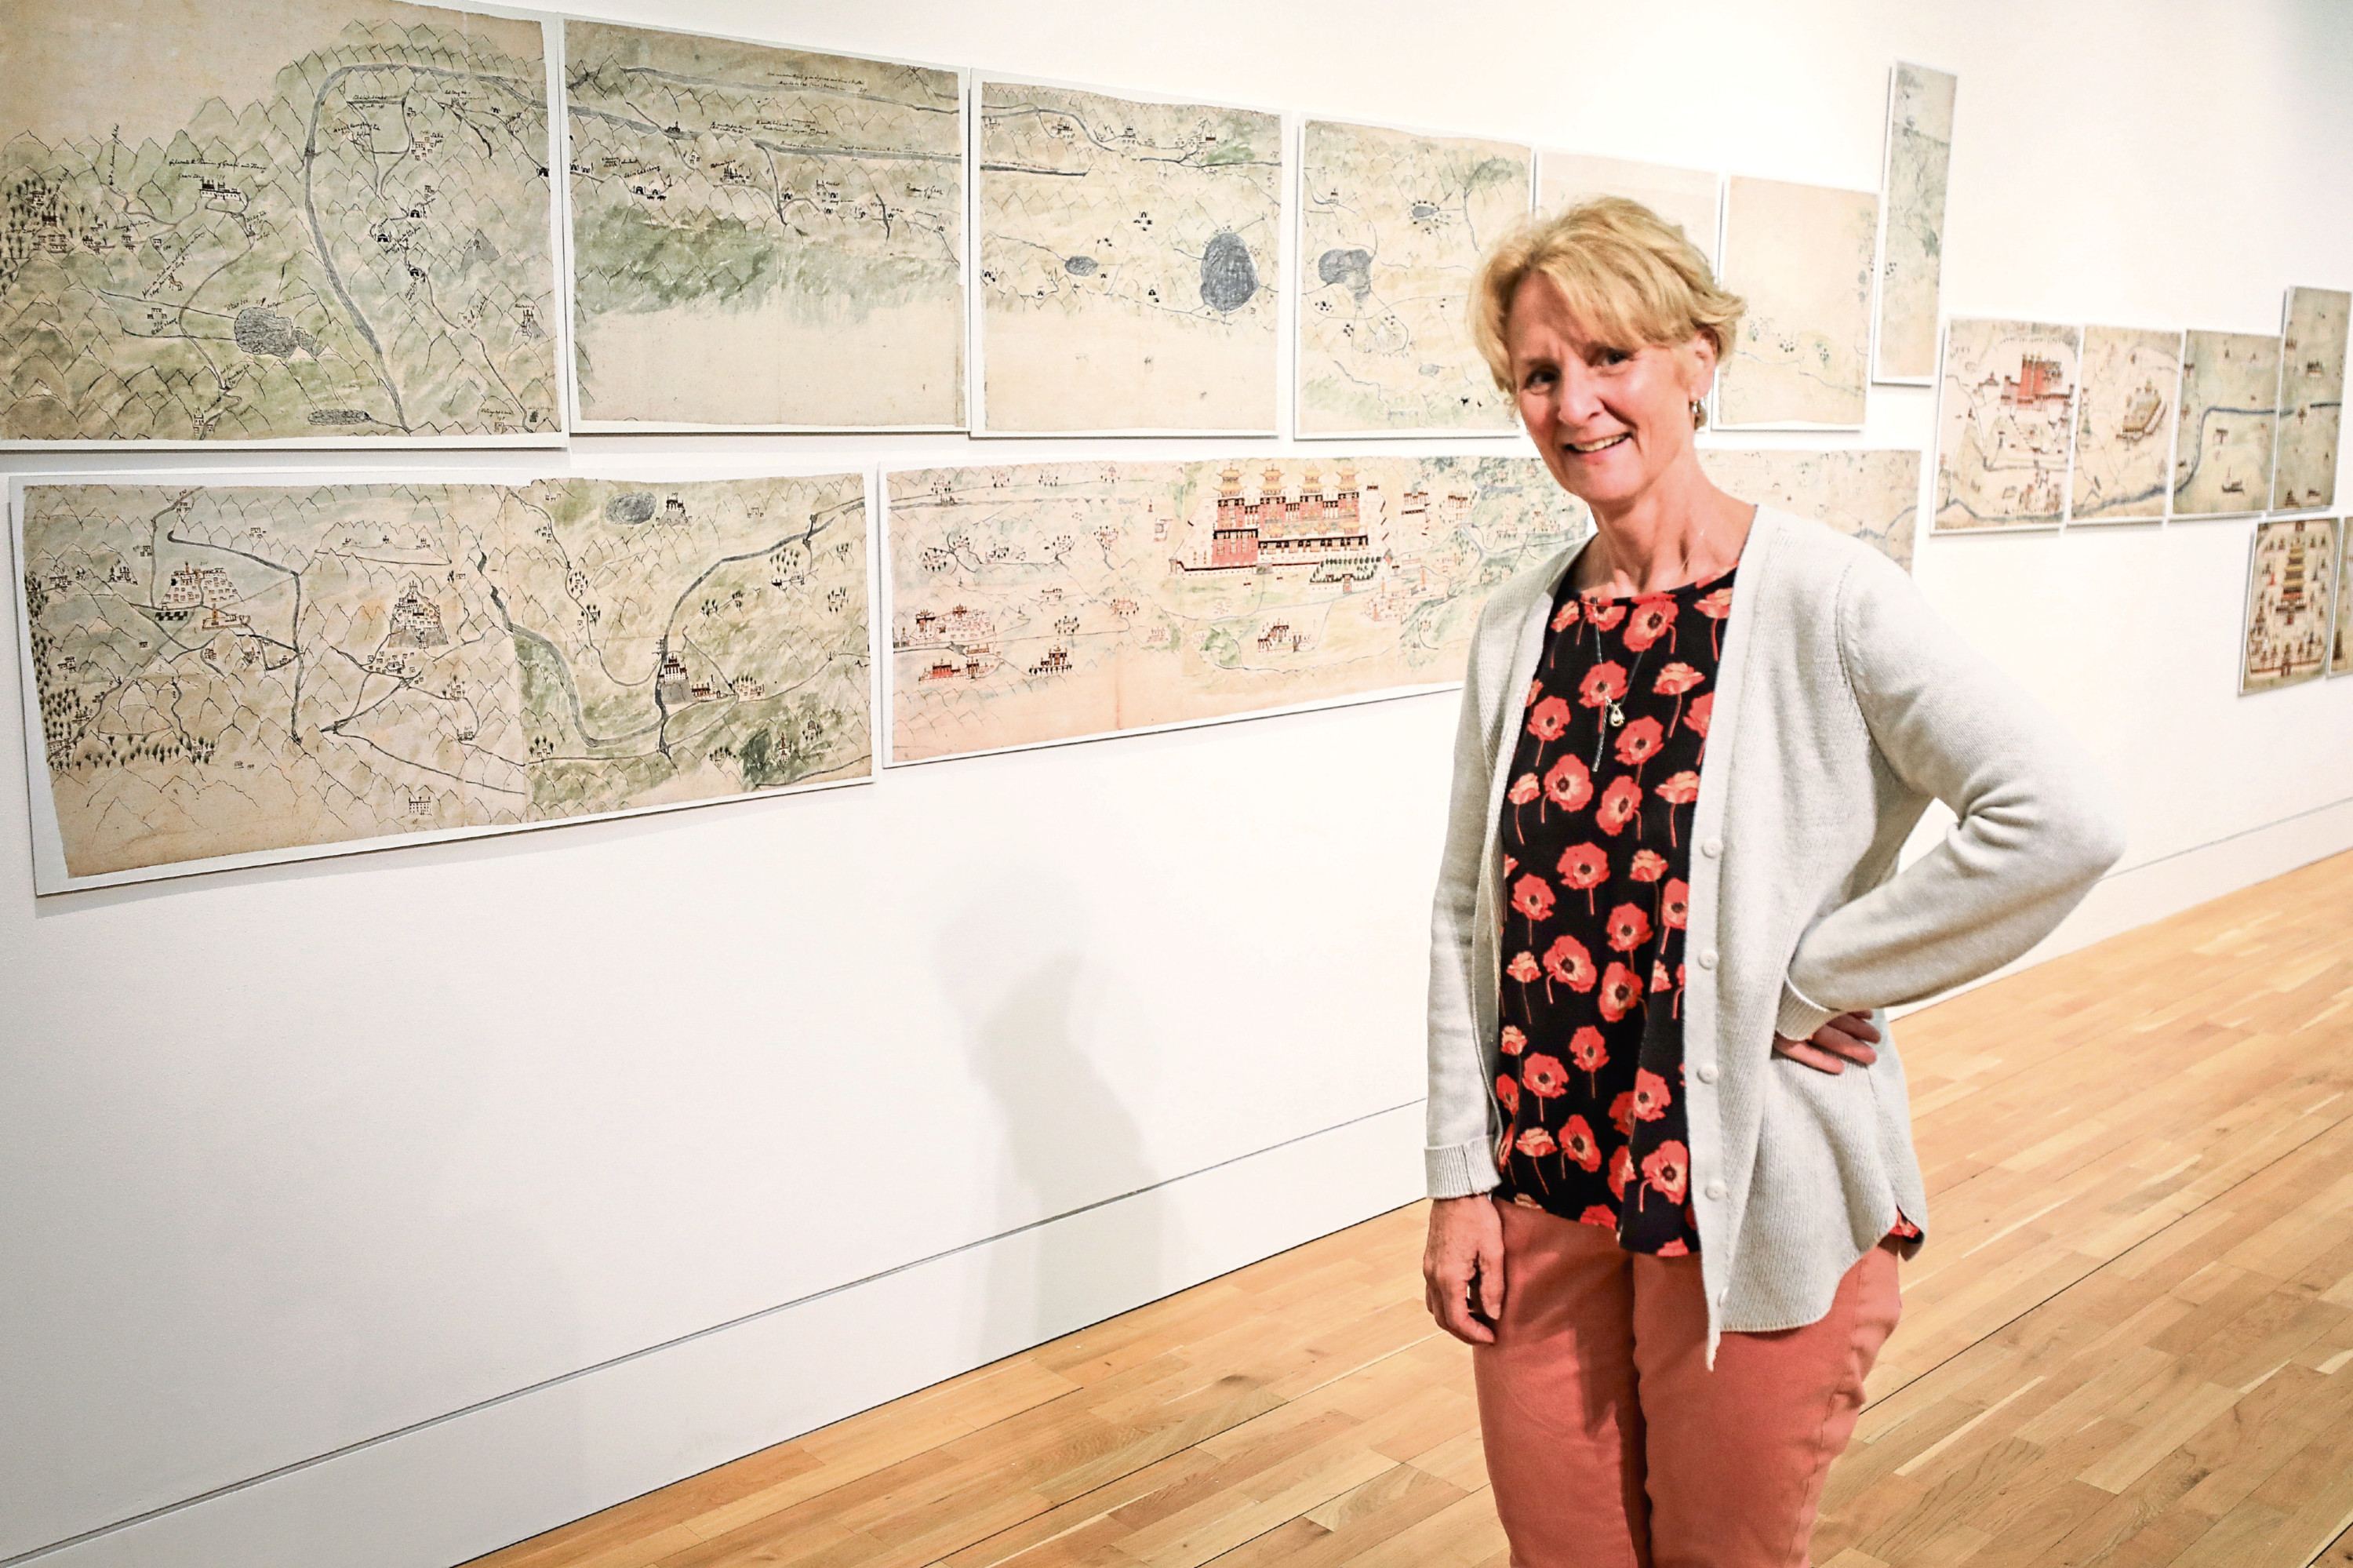 Lucy Goodpaster visited The McManus on Friday.